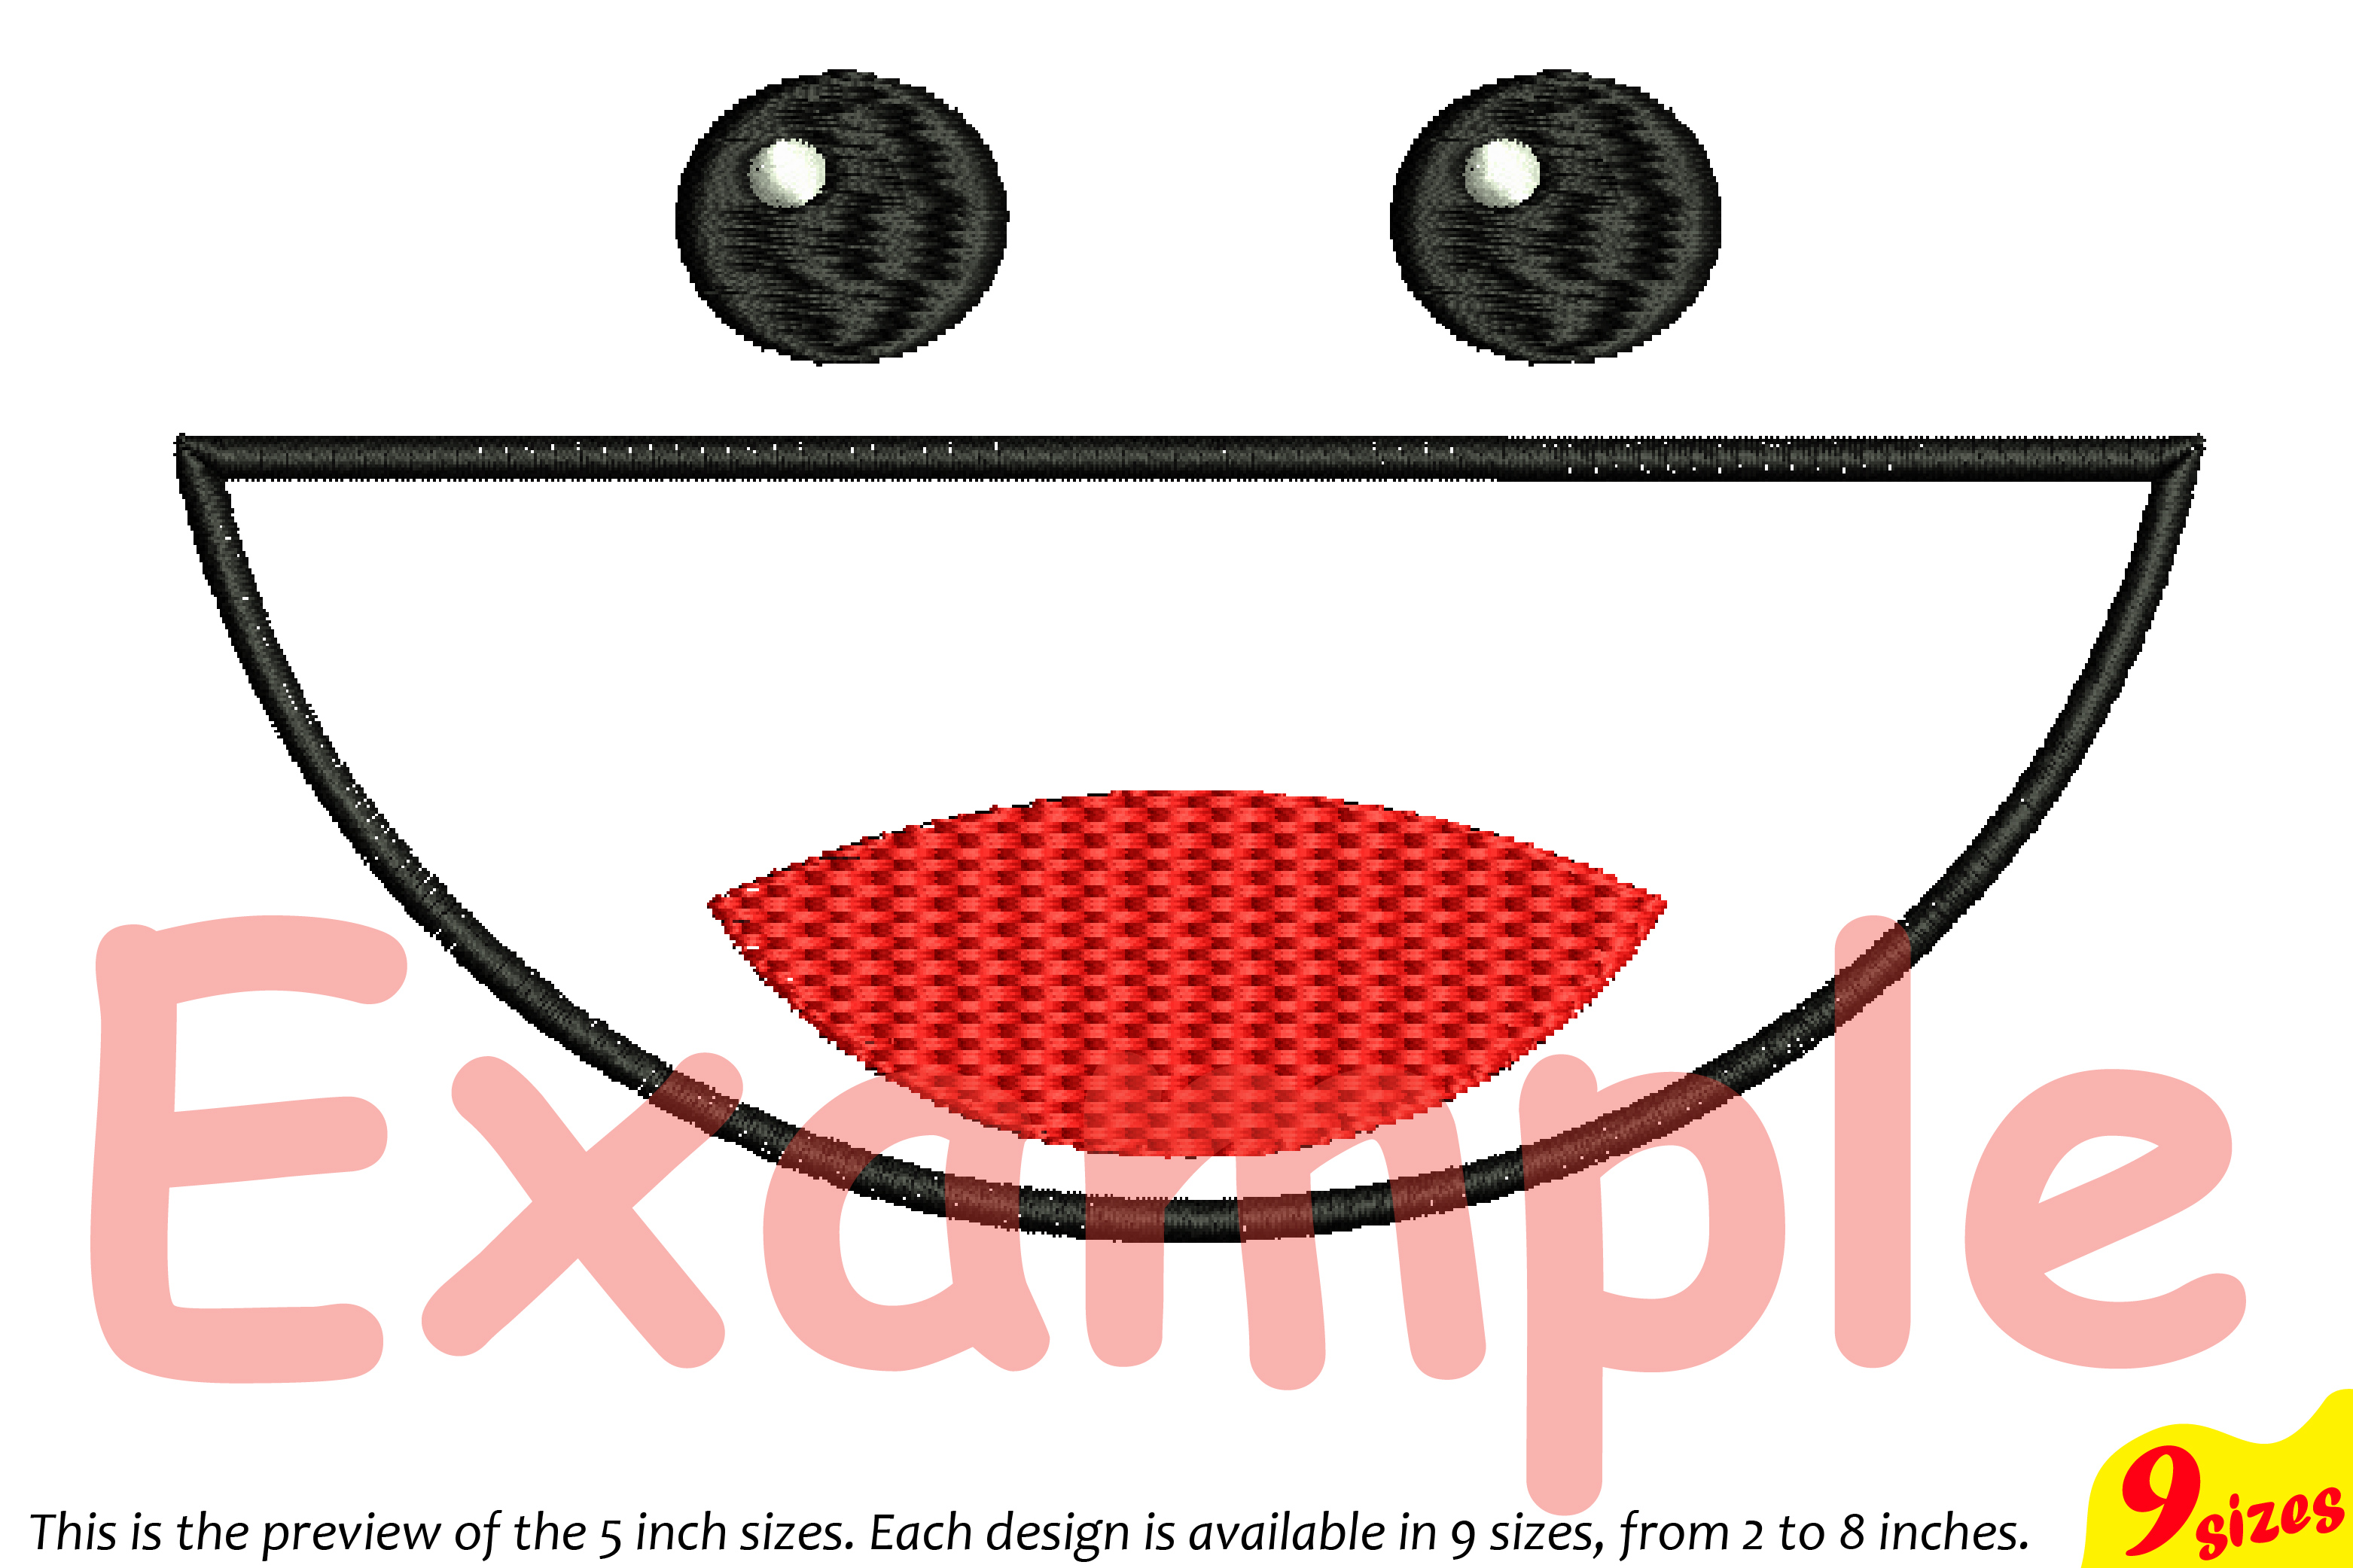 Cute Emoji Embroidery Design Machine Instant Download Commercial Use digital file icon symbol sign emoticons smile Kawaii Expression 185b example image 4